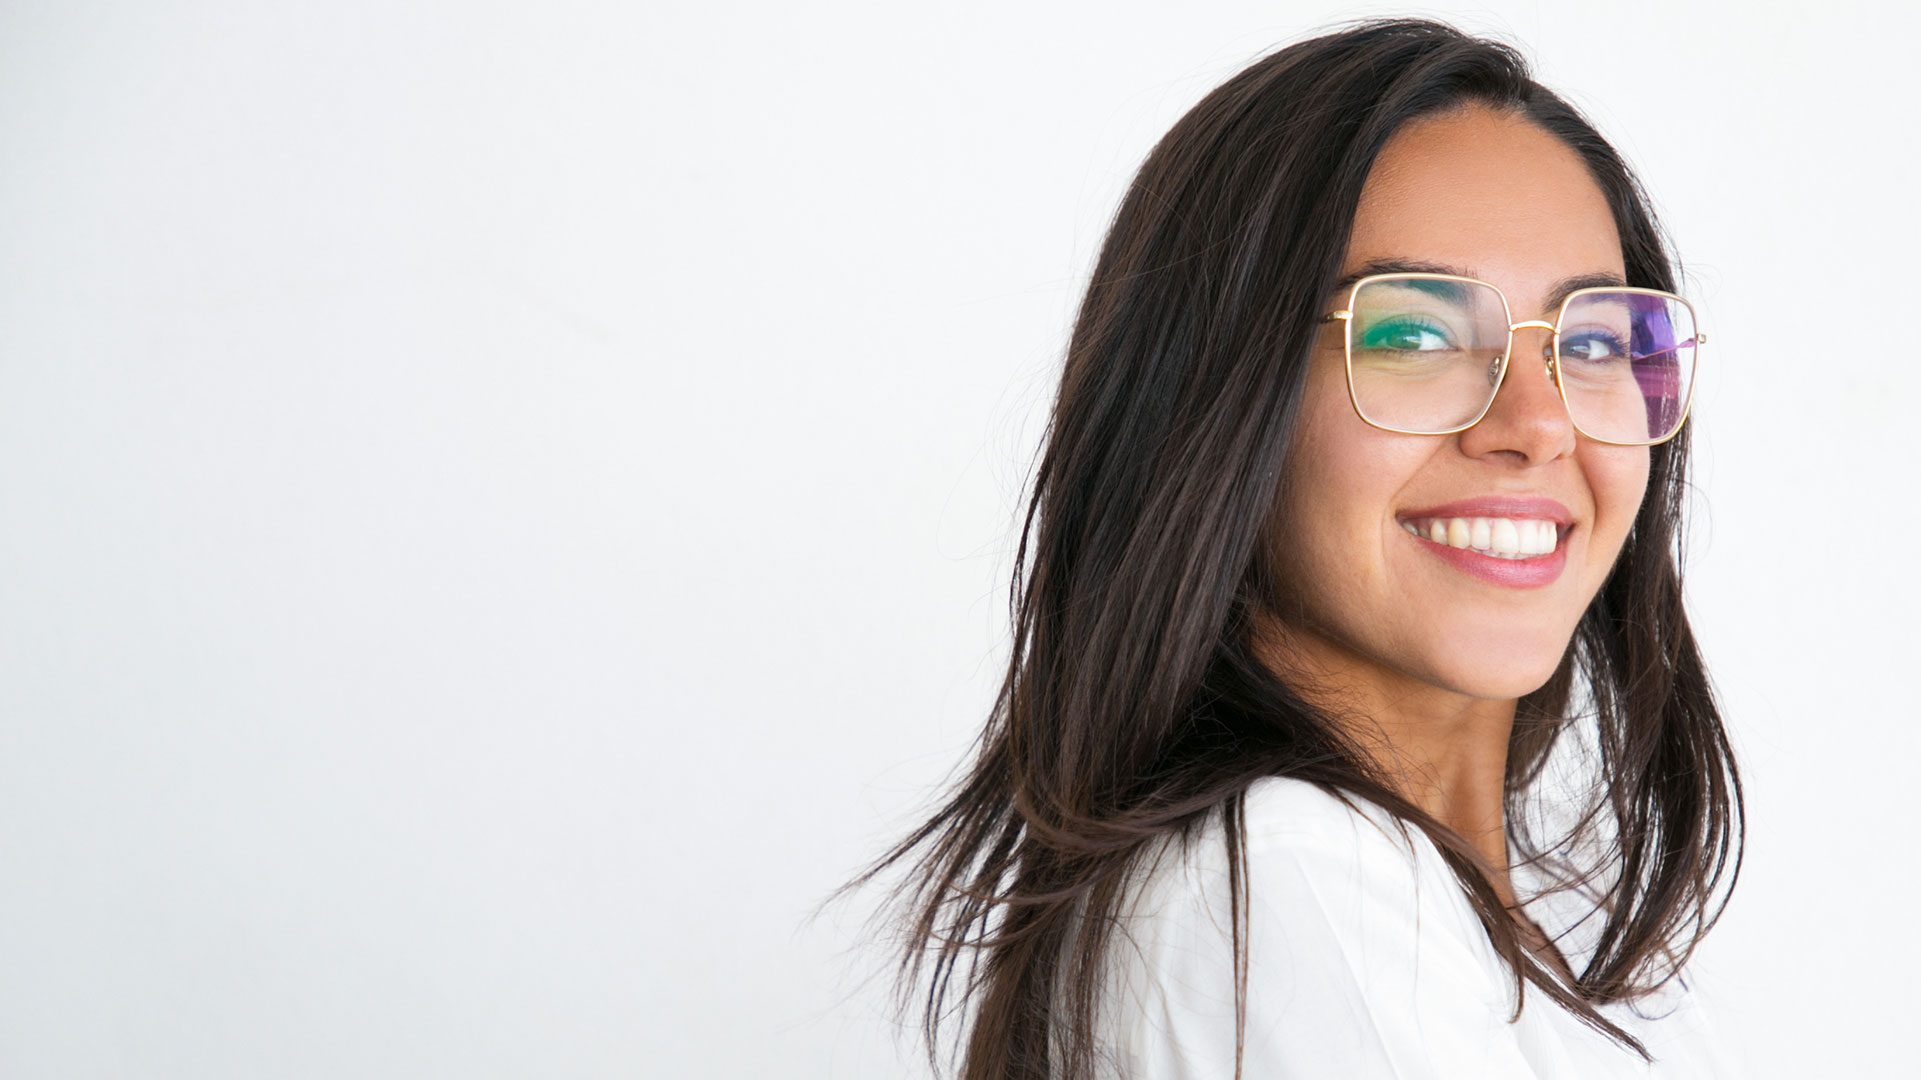 young woman in white shirt wearing gold glasses smiling